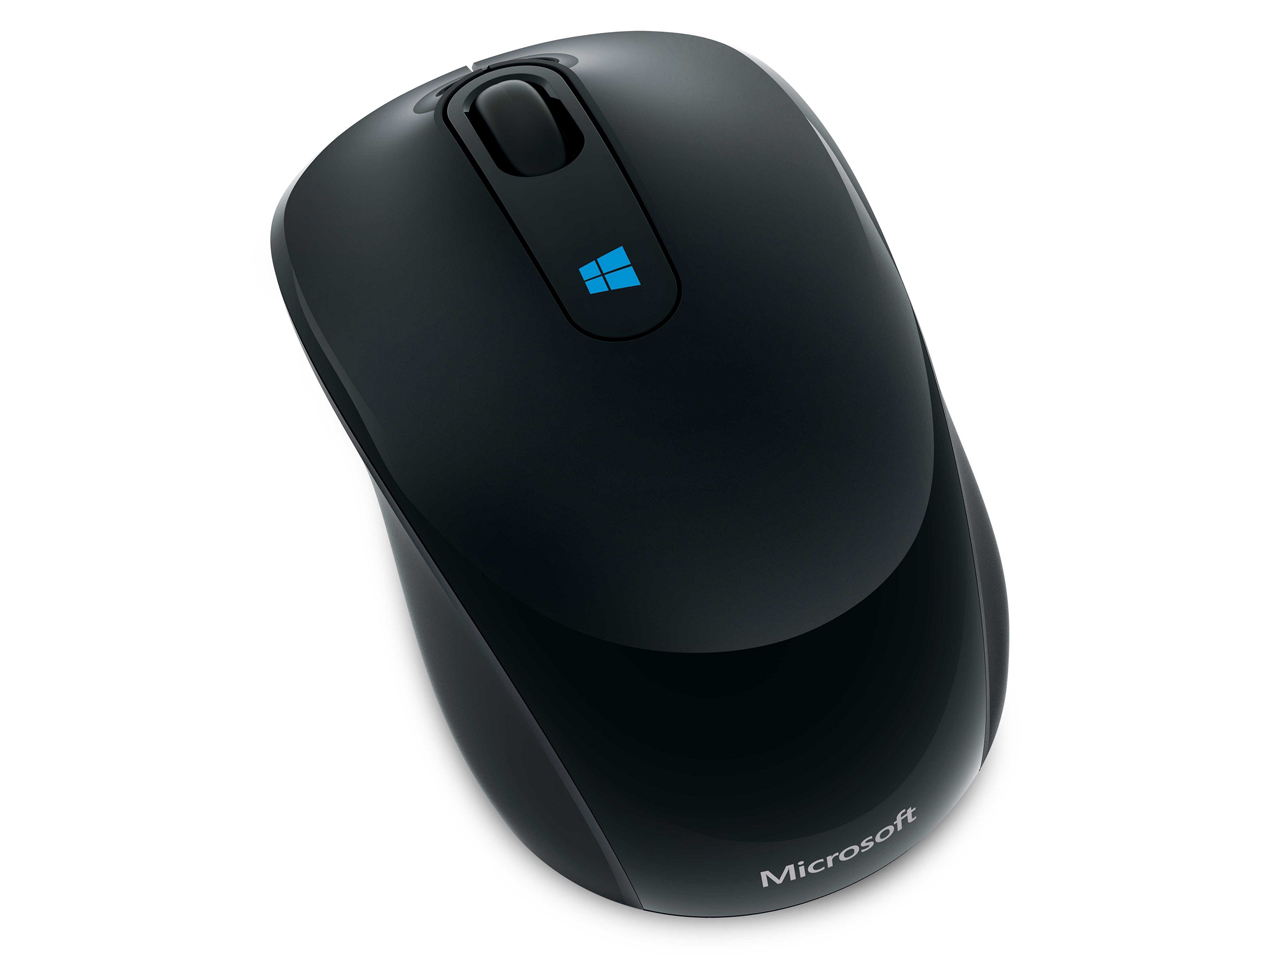 Sculpt Mobile Mouse 43U-00007 [黒] の製品画像